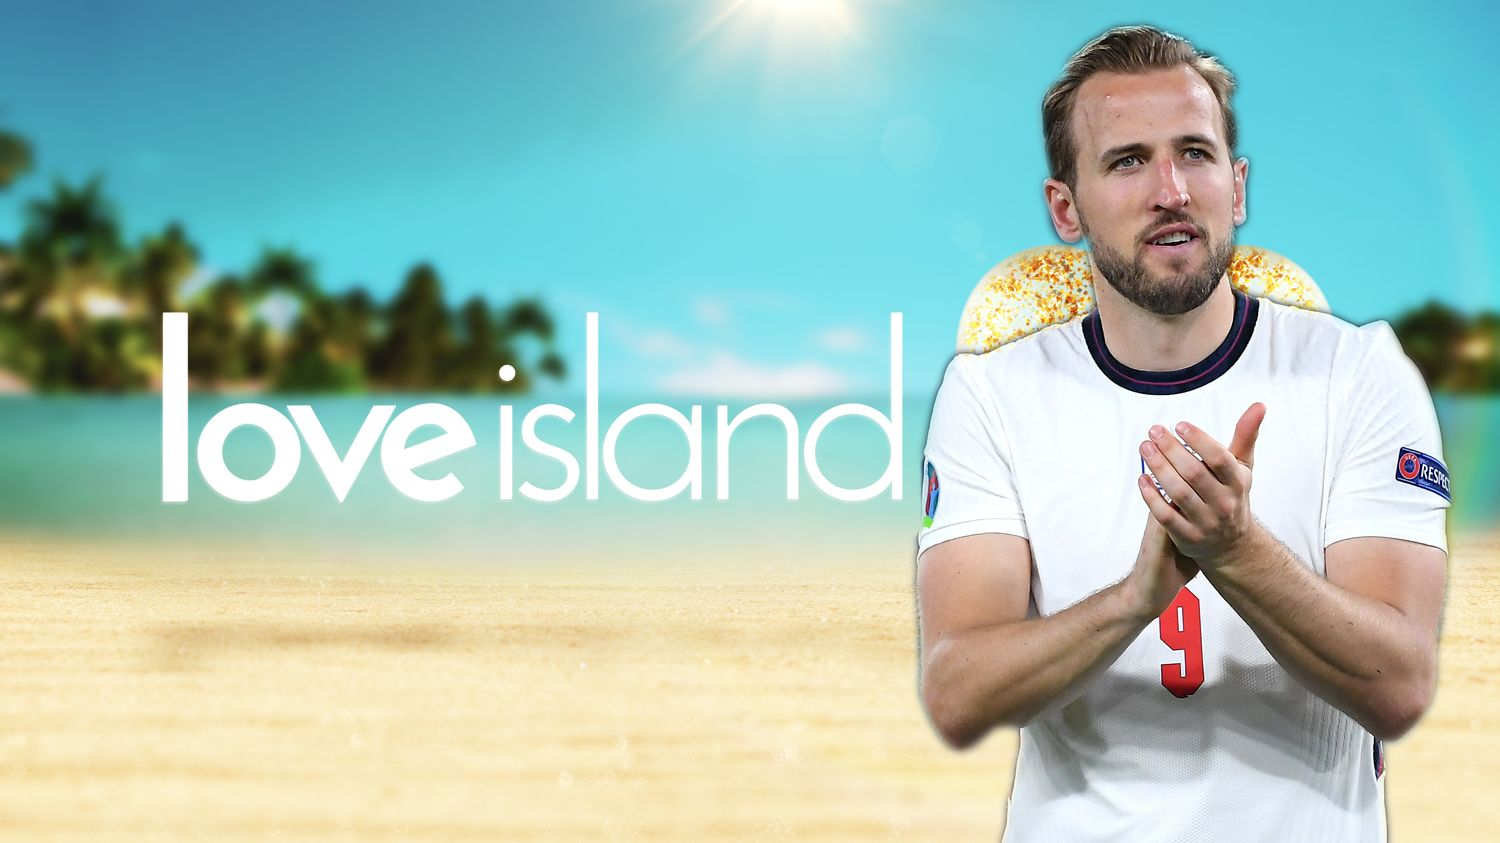 Tonight's Love Island has been rescheduled for the England recreation